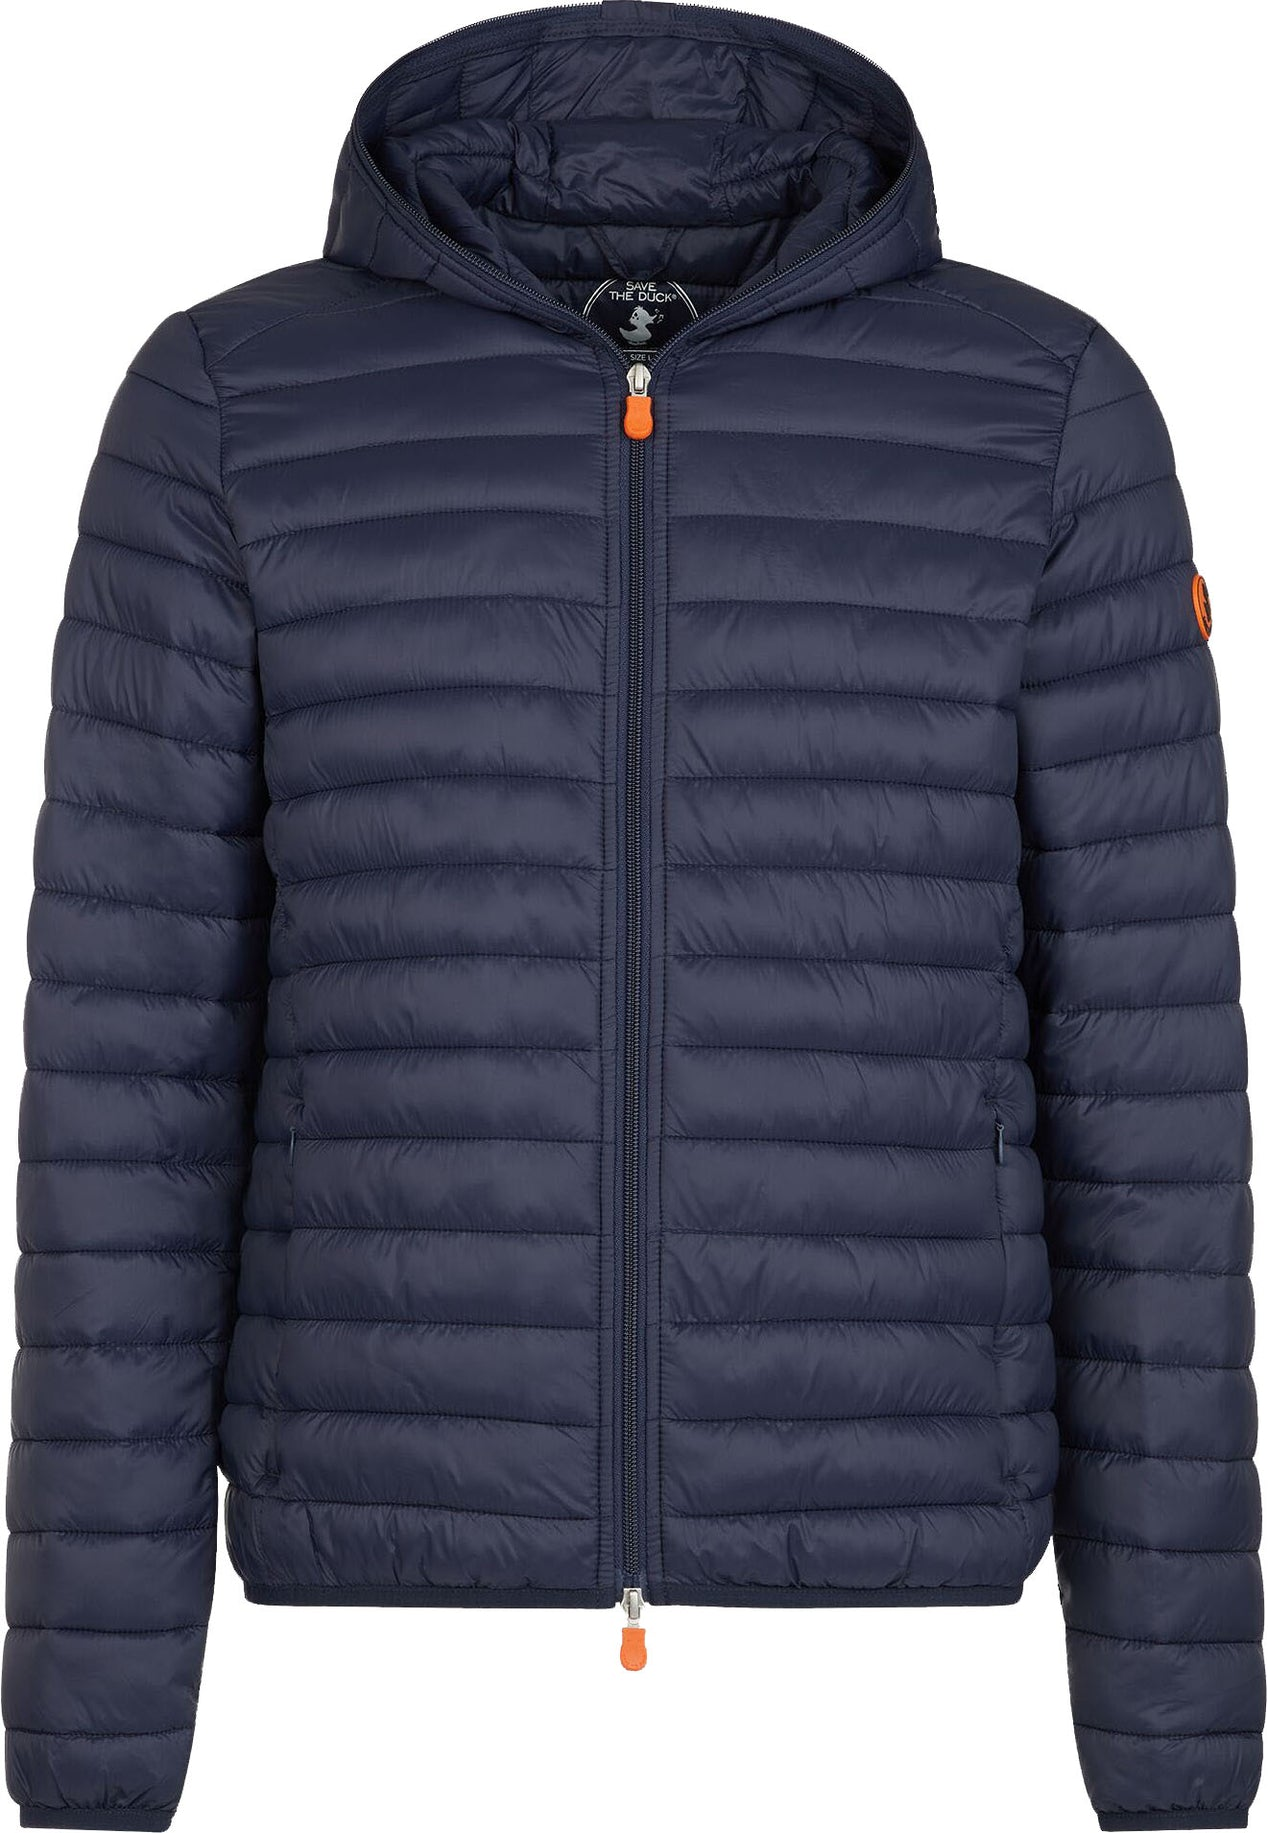 cff68913a47b16 Save The Duck Giga 8 Hooded Jacket - Men's   Altitude Sports